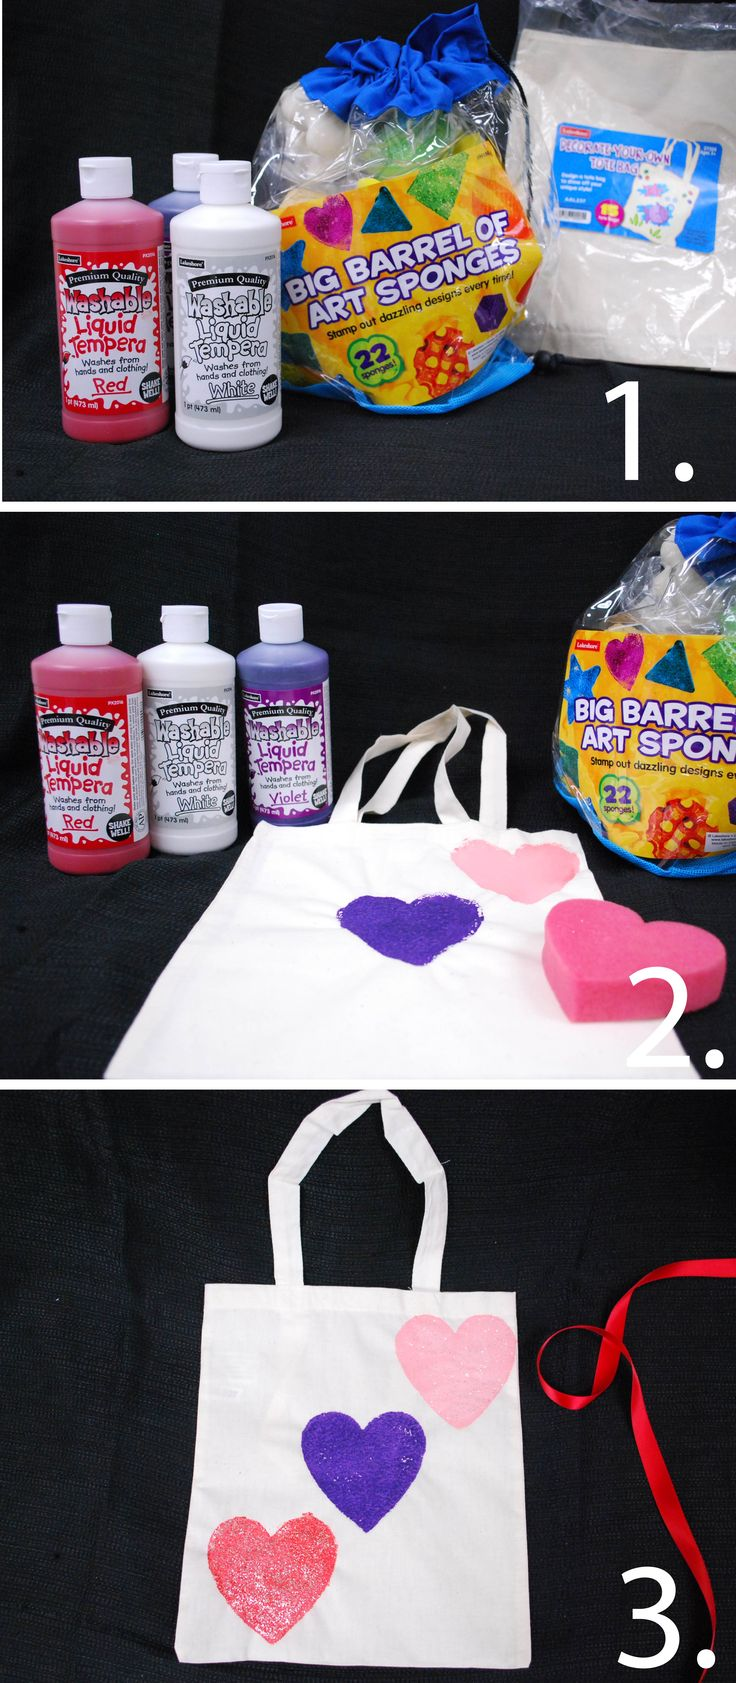 Kids can make this lovable tote covered in hearts for their teacher or their best friends. What you need: Lakeshore's Decorate-Your-Own Tote Bag, Lakeshore's Big Barrel of Art Sponges and paint!